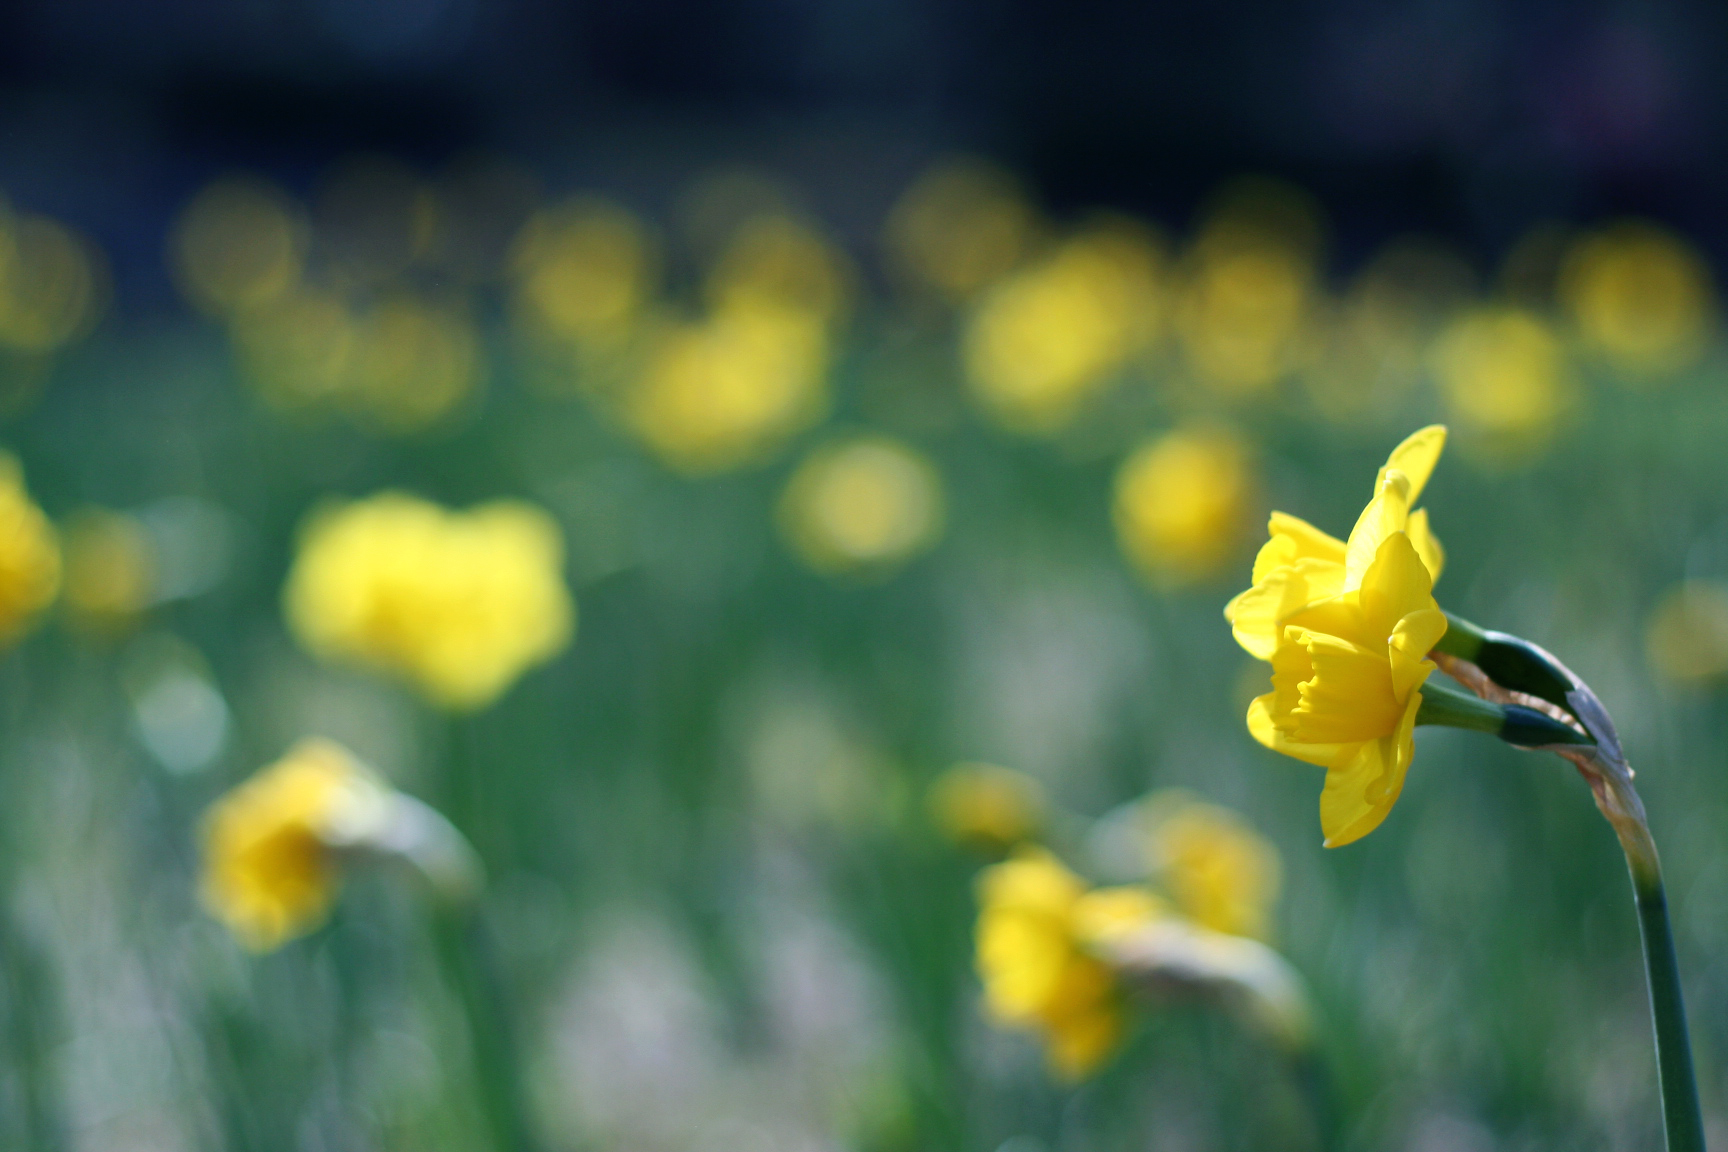 a field of golden daffodil blossoms